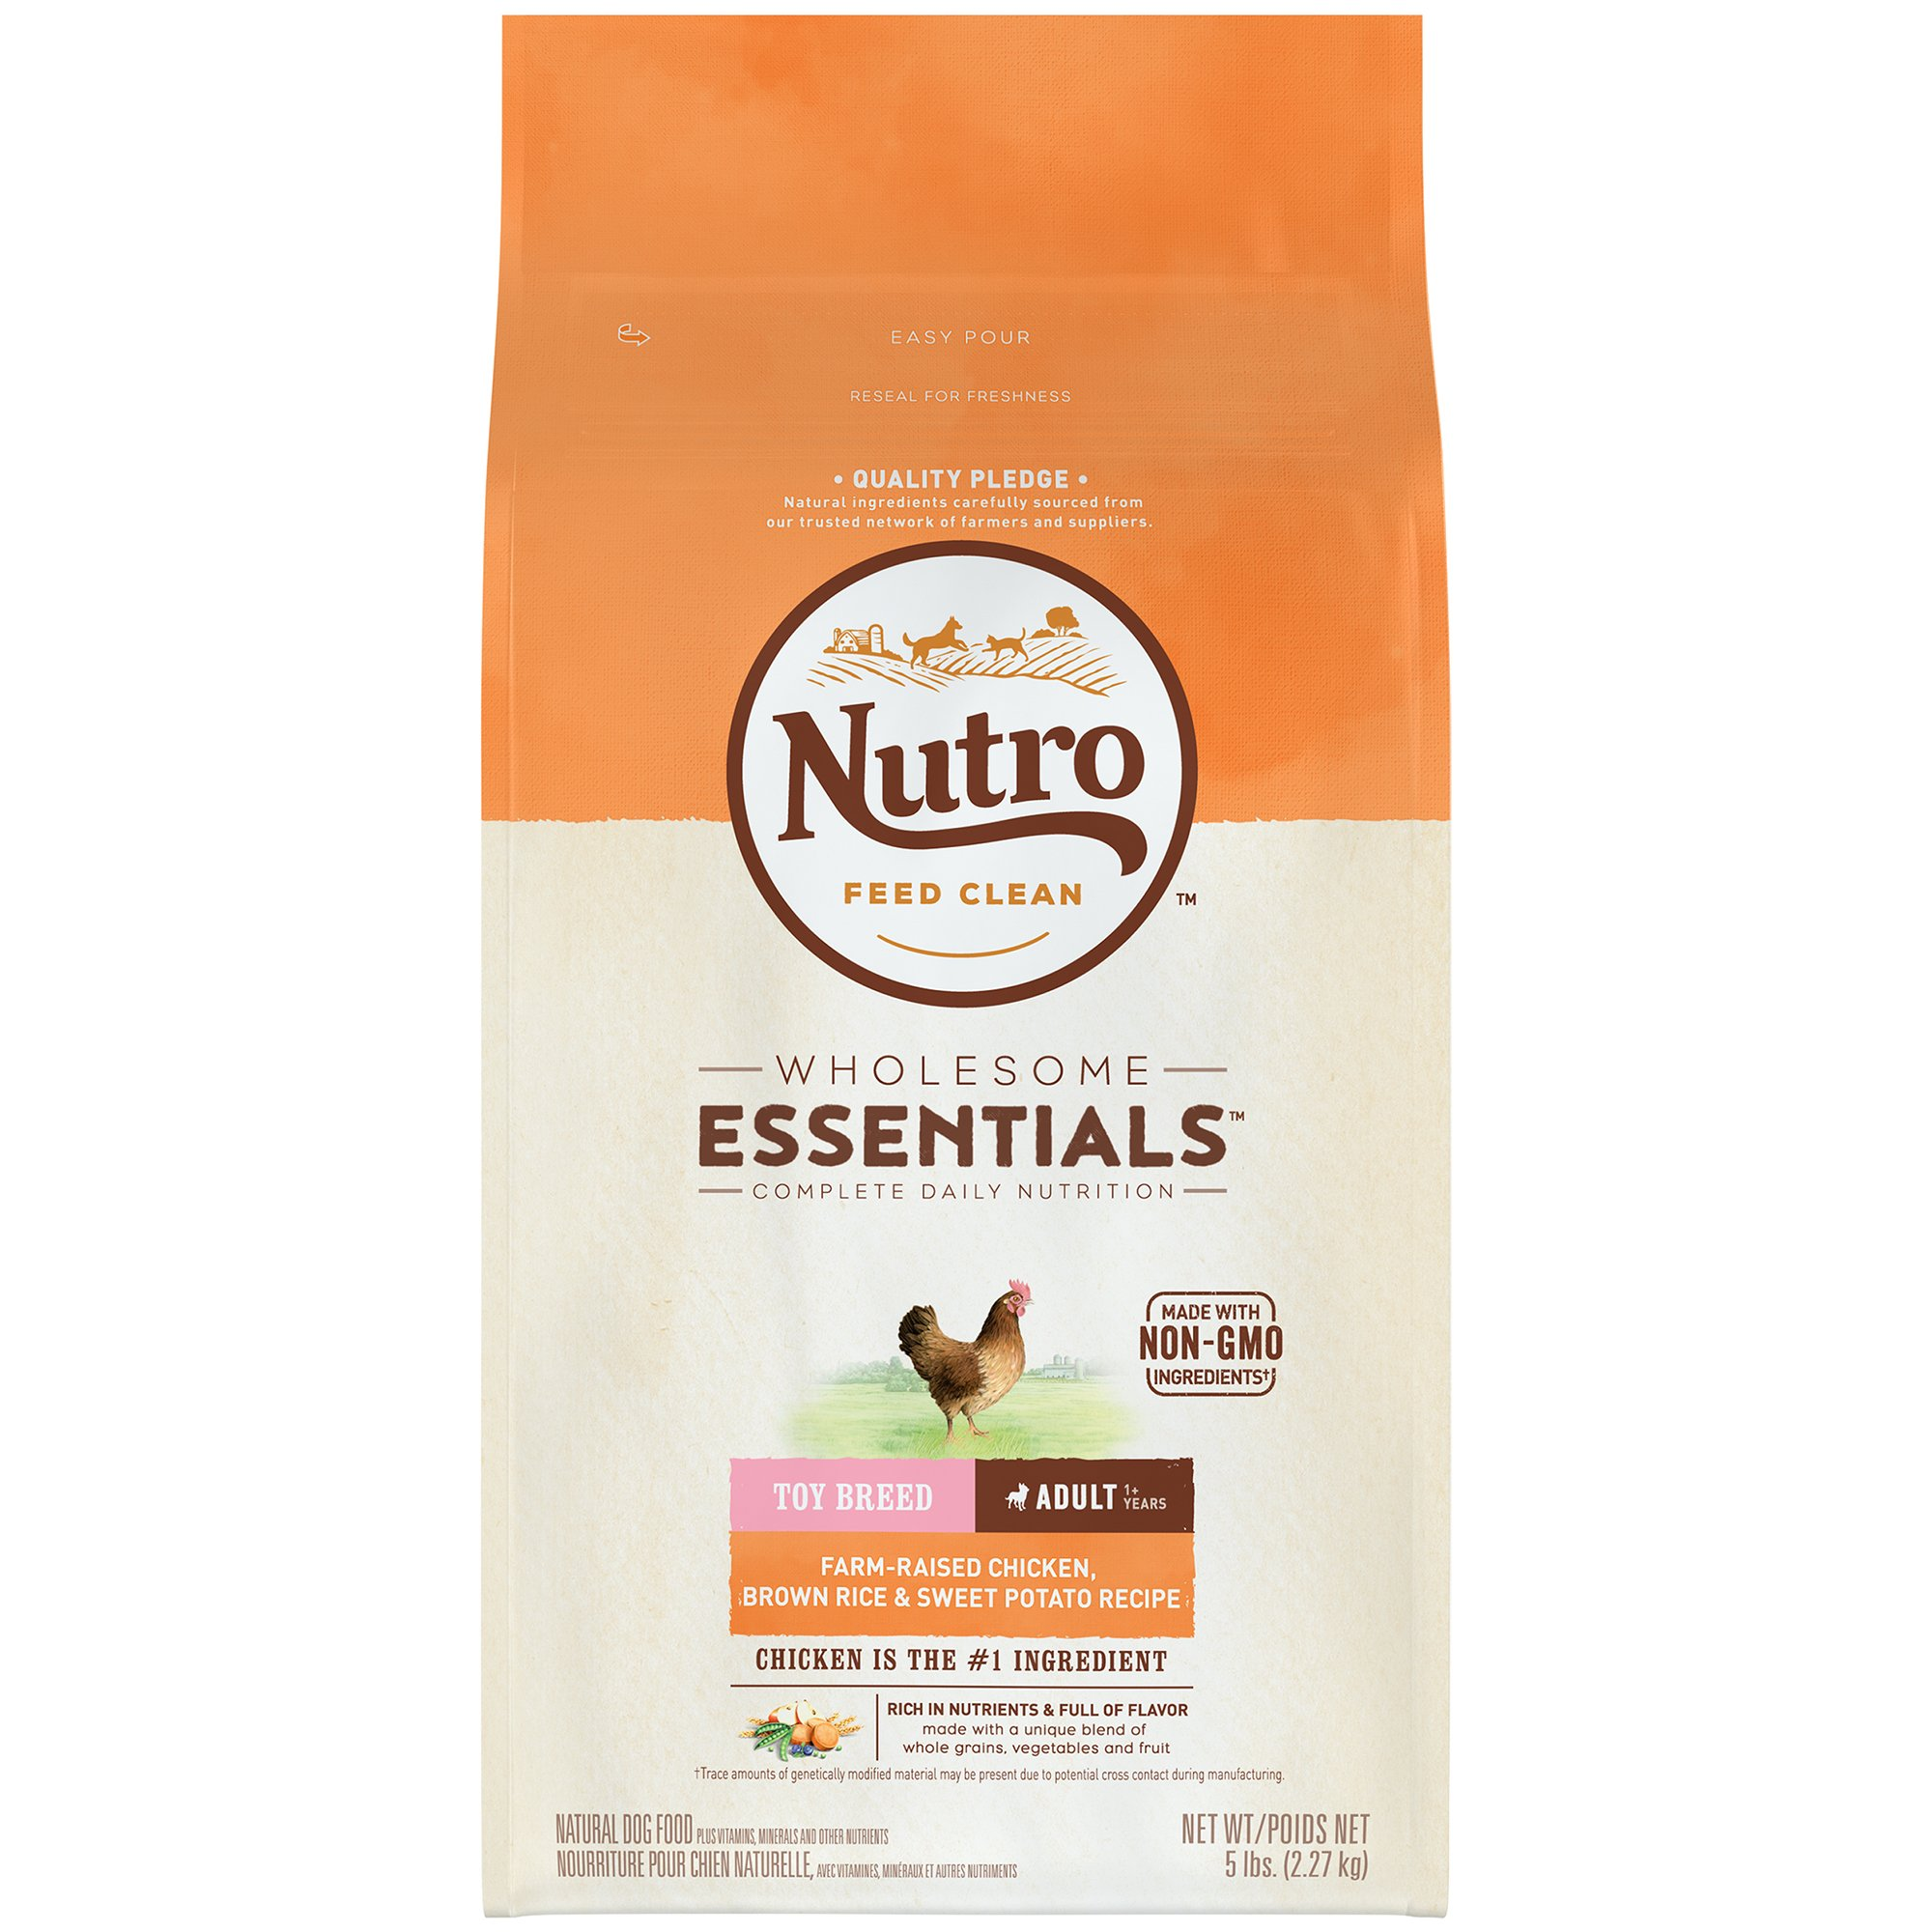 NUTRO WHOLESOME ESSENTIALS Adult Dry Dog Food Standard Packaging 5 lbs.